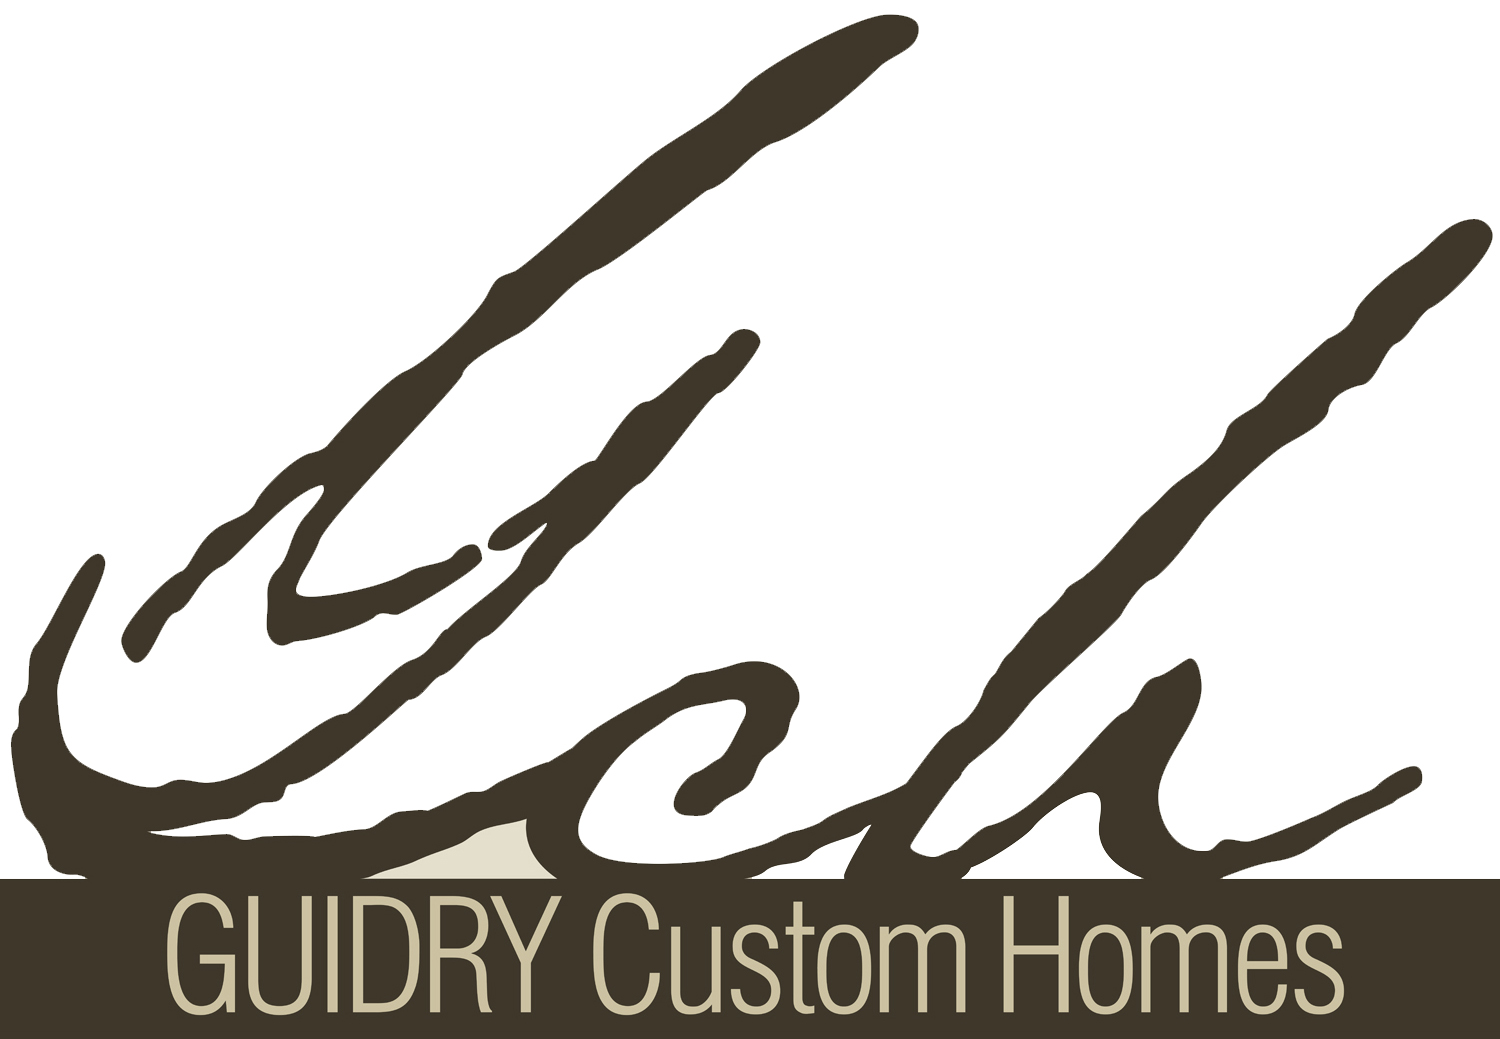 Guidry Custom Homes, Inc. logo